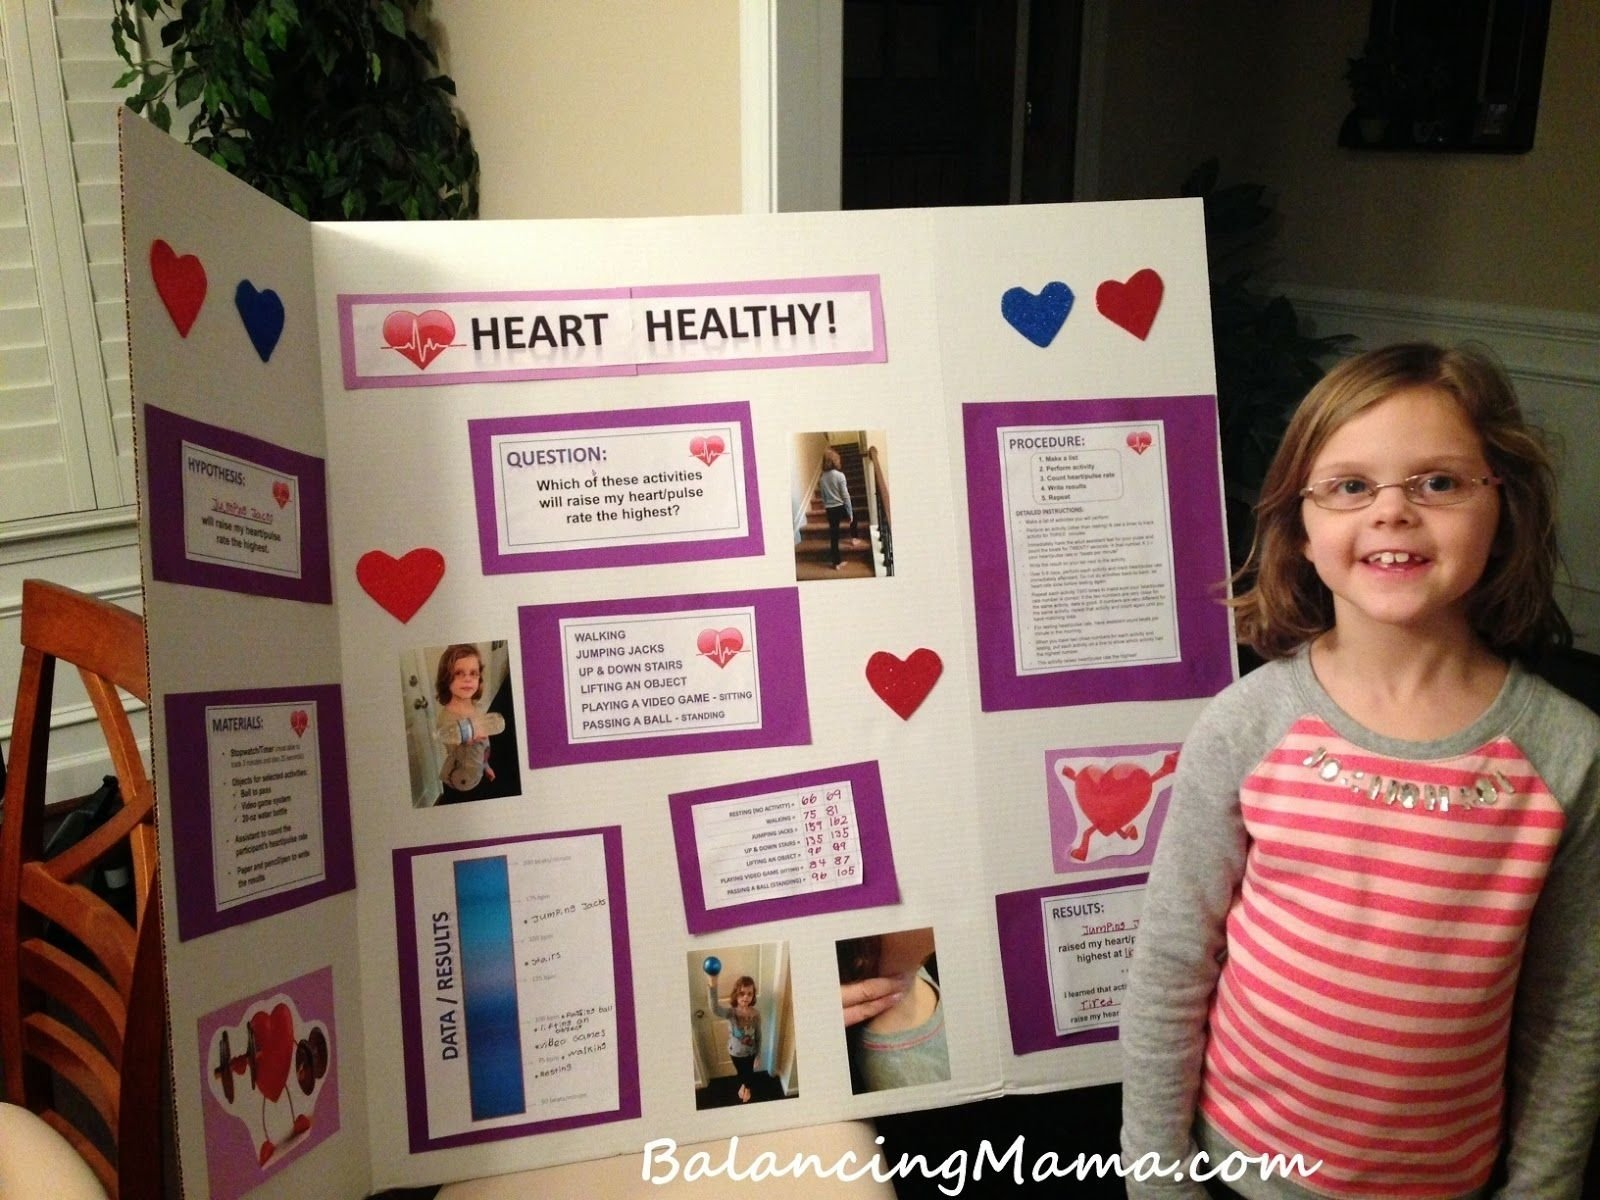 10 Cute Science Project Ideas For 1St Graders pinmegan keese wetzel on science fair projects pinterest 2020